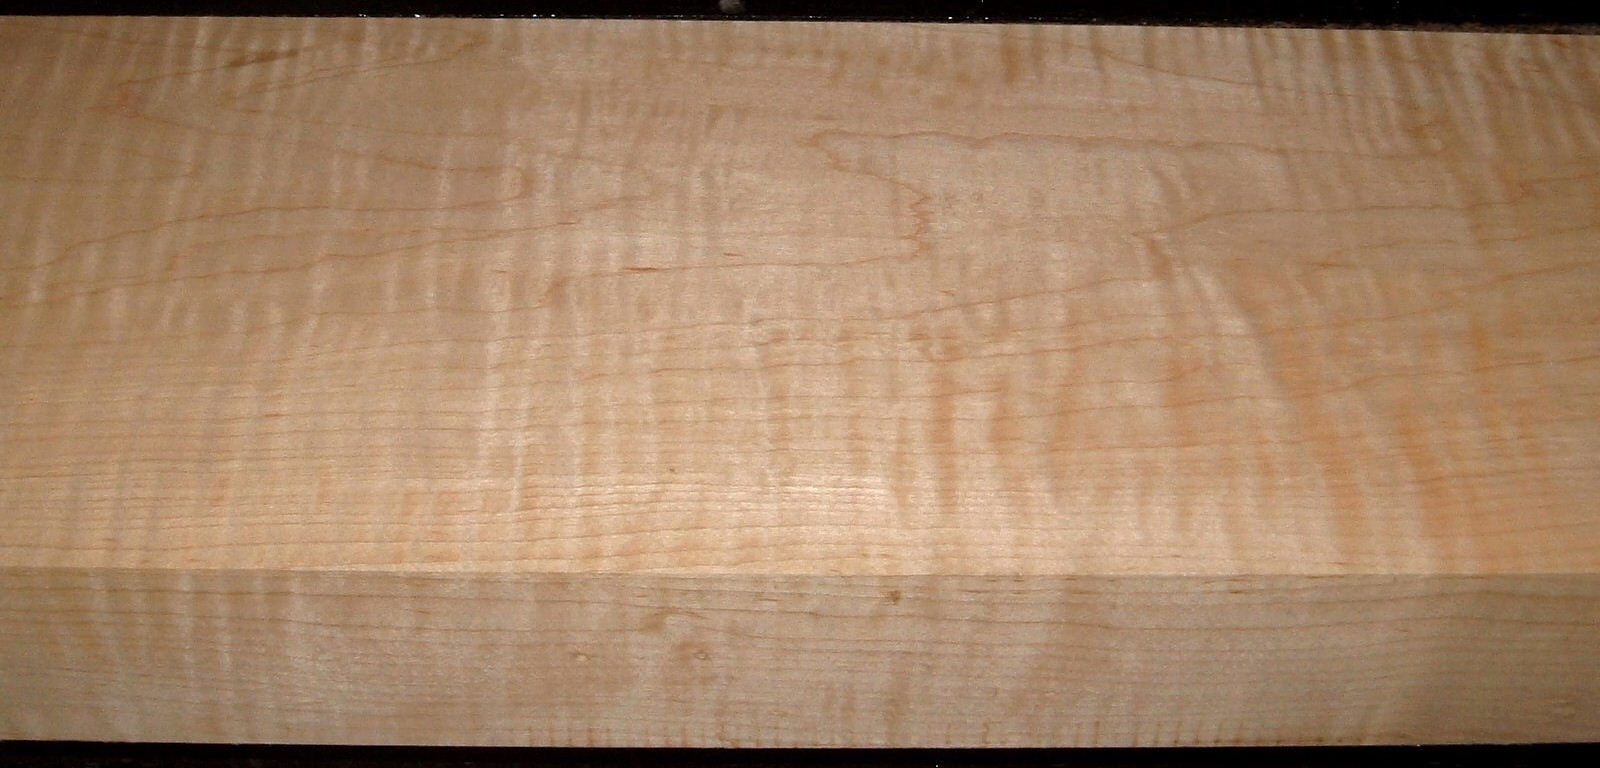 M2006-492 , 2-1/4x7-1/8x44,8/4 Curly Tiger Maple